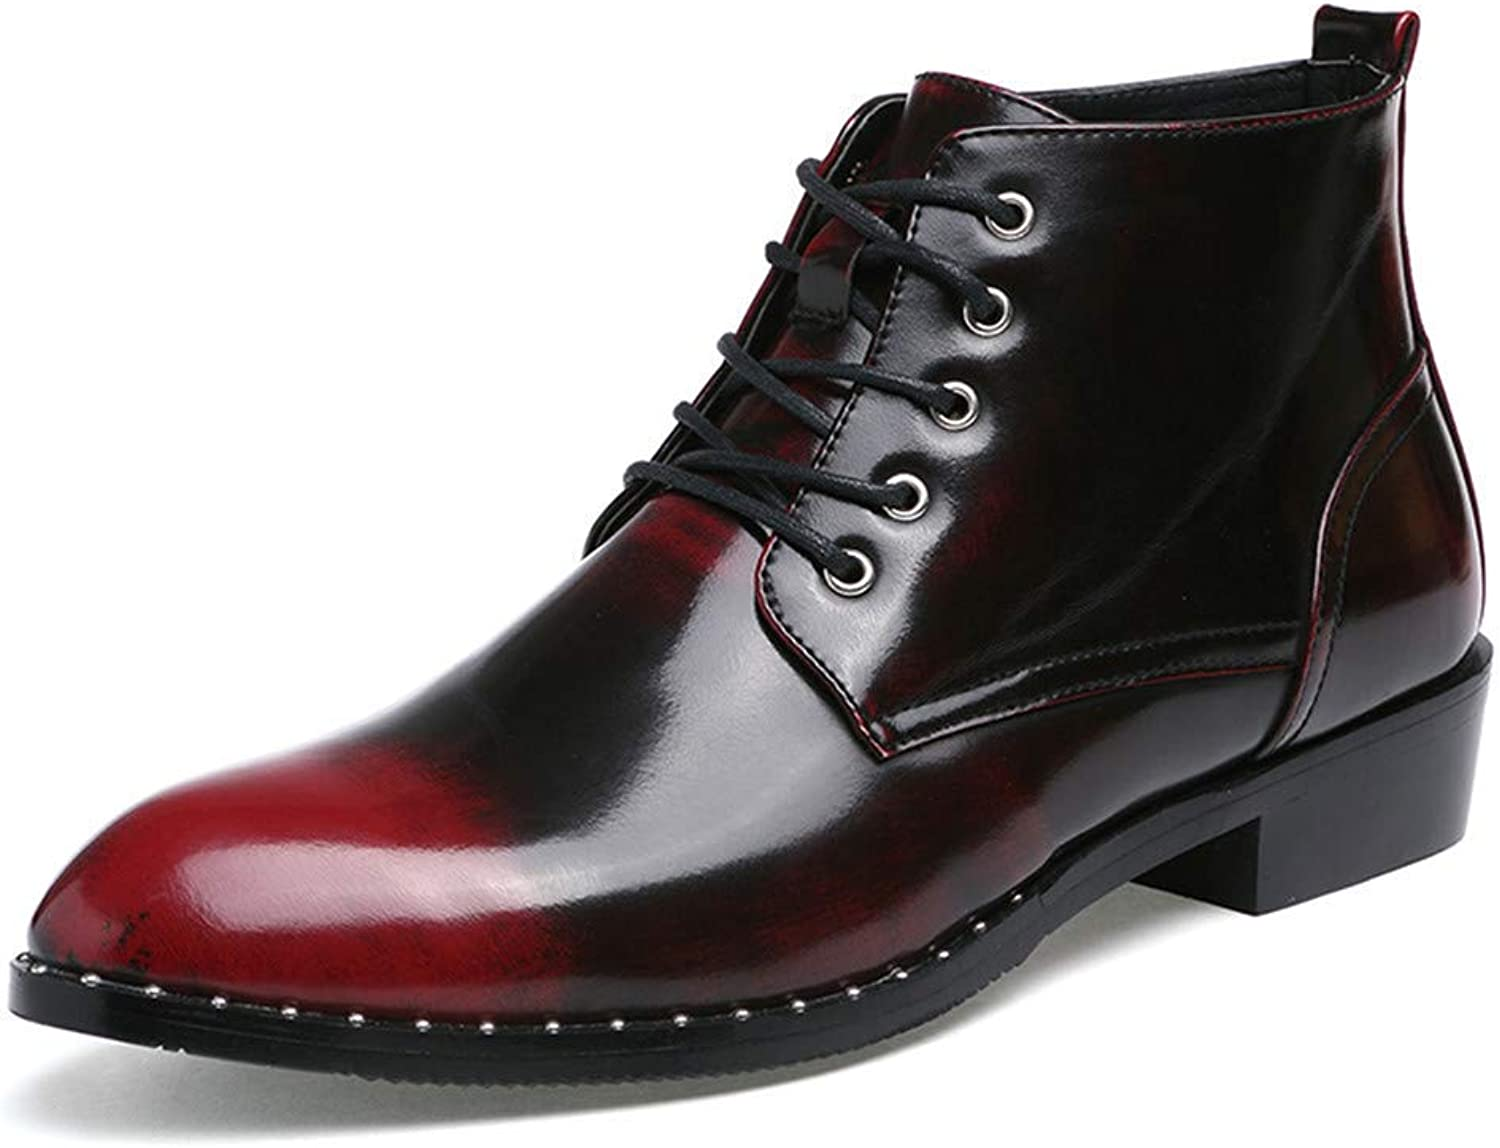 FuweiEncore 2018 Men Business Oxford Casual Autumn Winter New Vintage High-Top Lace Formal shoes (color  Silver, Size  38 EU) (color   Red, Size   42 EU)